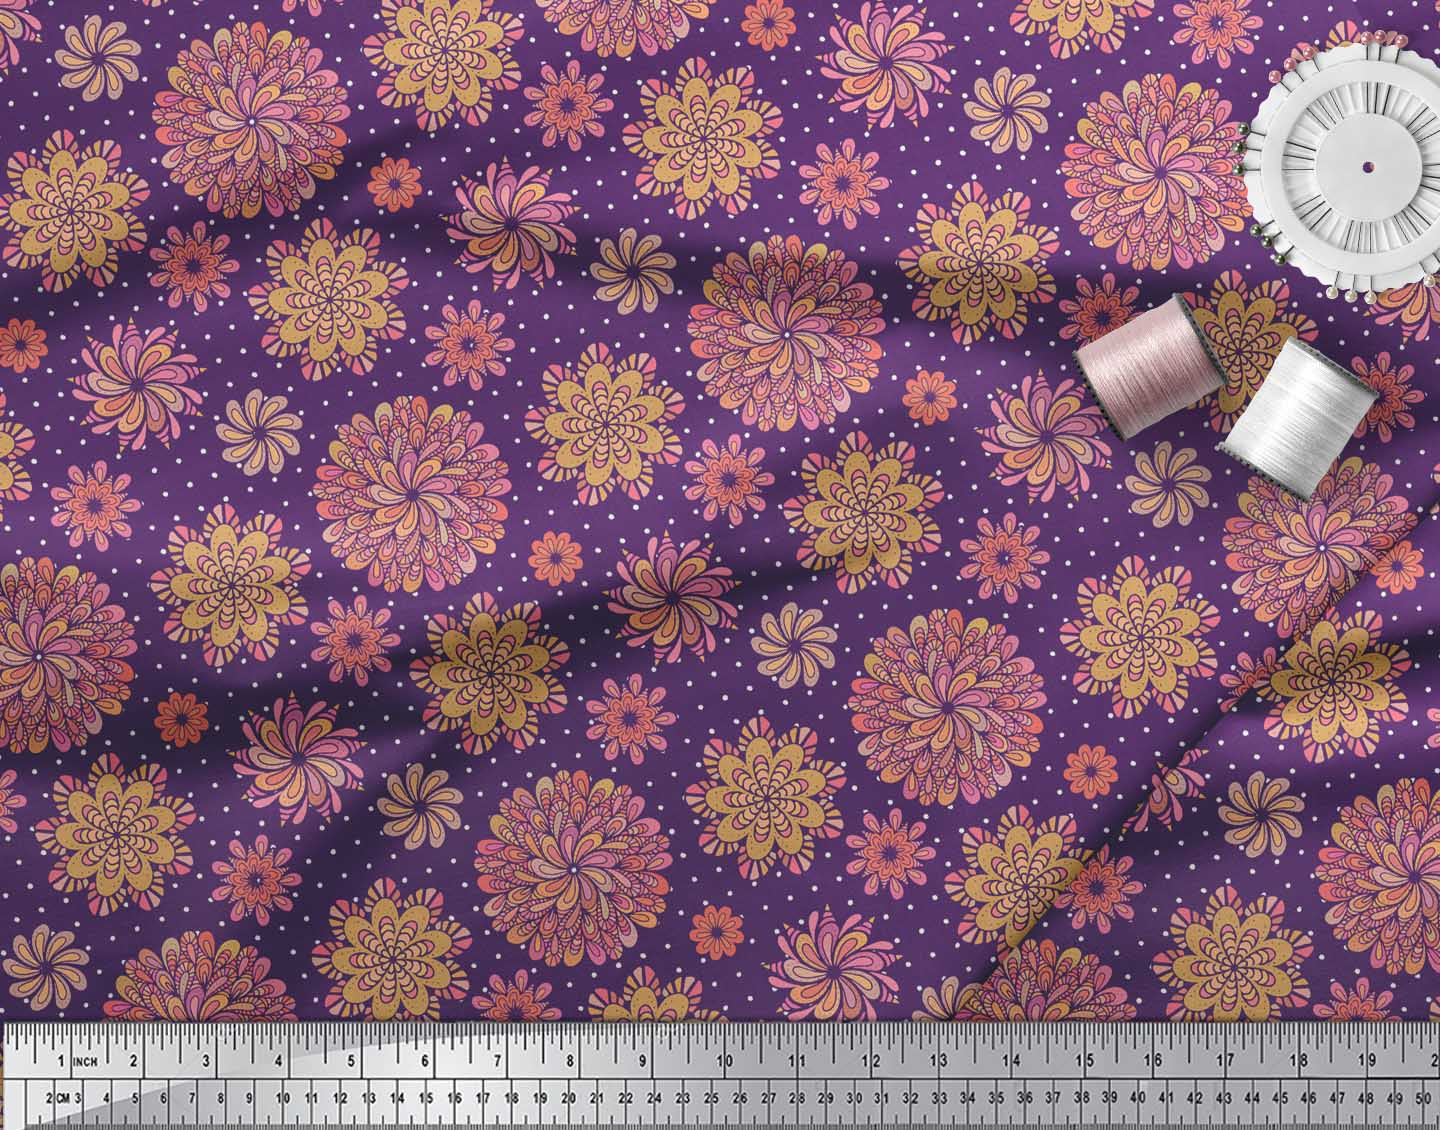 Soimoi-Purple-Cotton-Poplin-Fabric-Multicolor-Dot-Mandala-Print-PR4 thumbnail 3